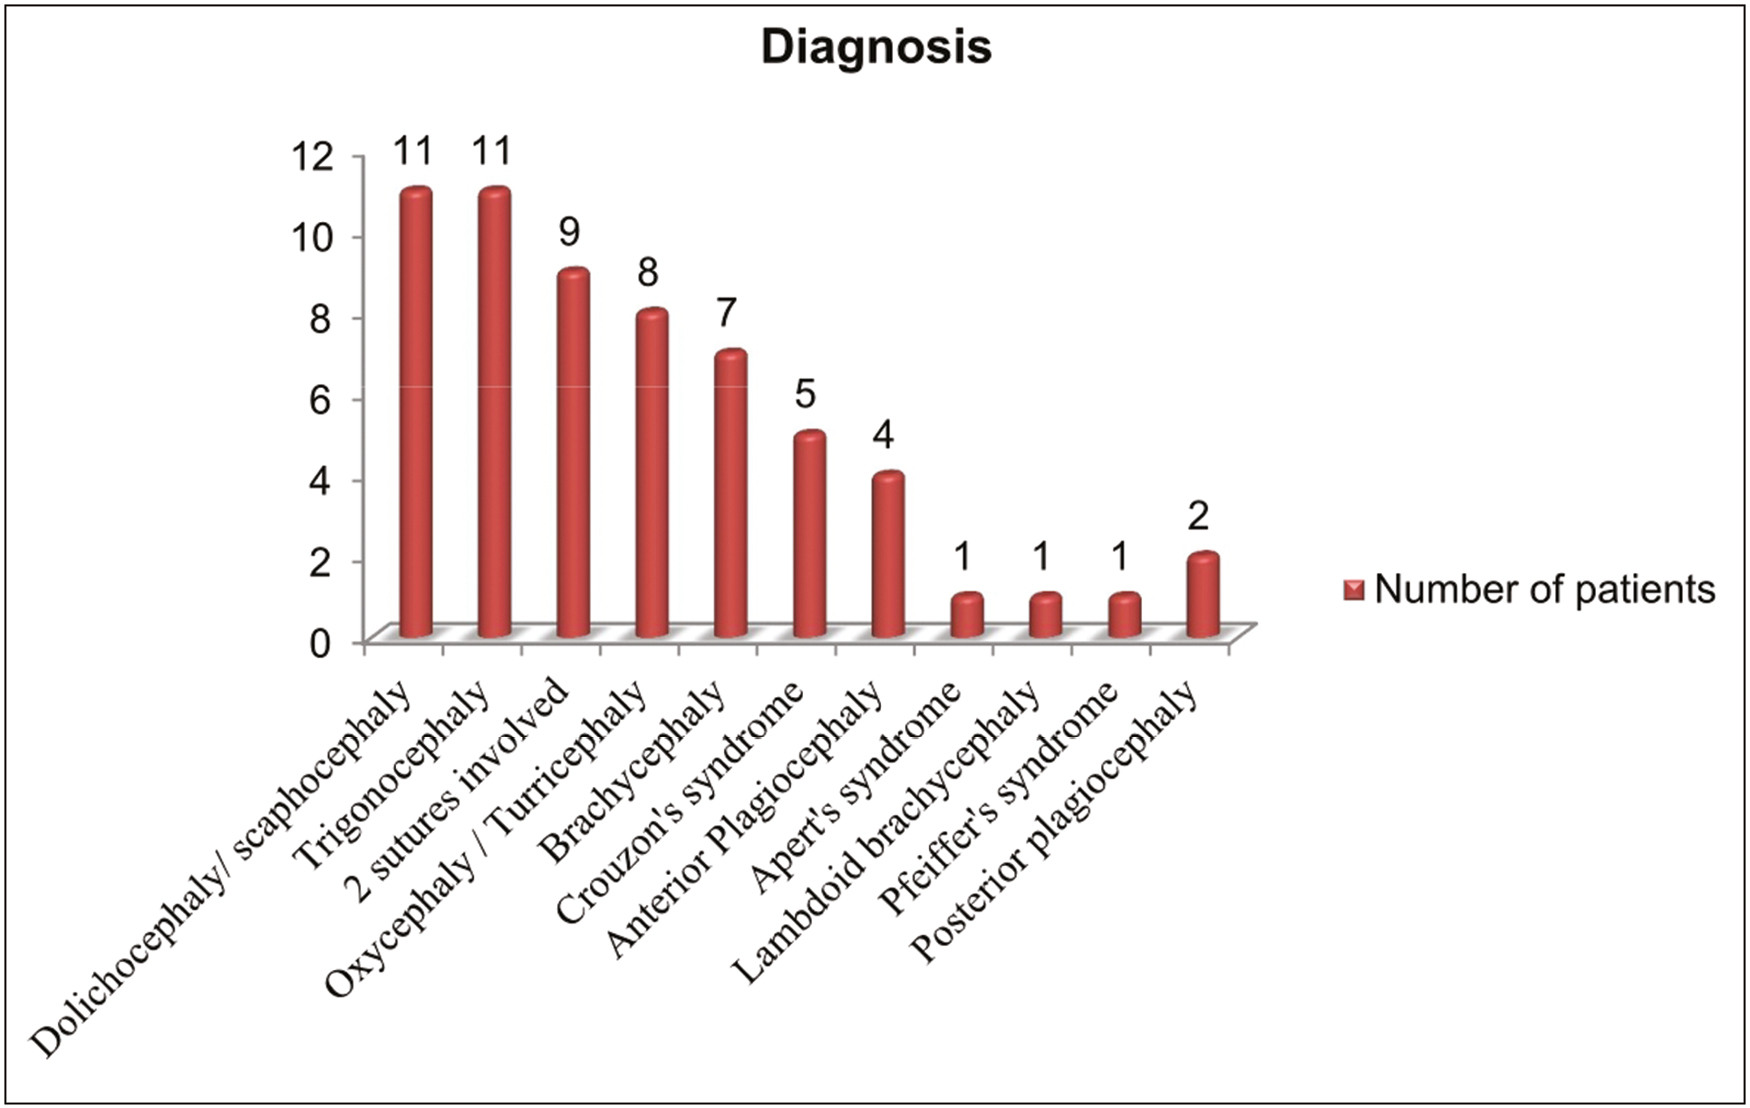 Figure 1: Graphical representation of the distribution of cases with respect to the diagnosis